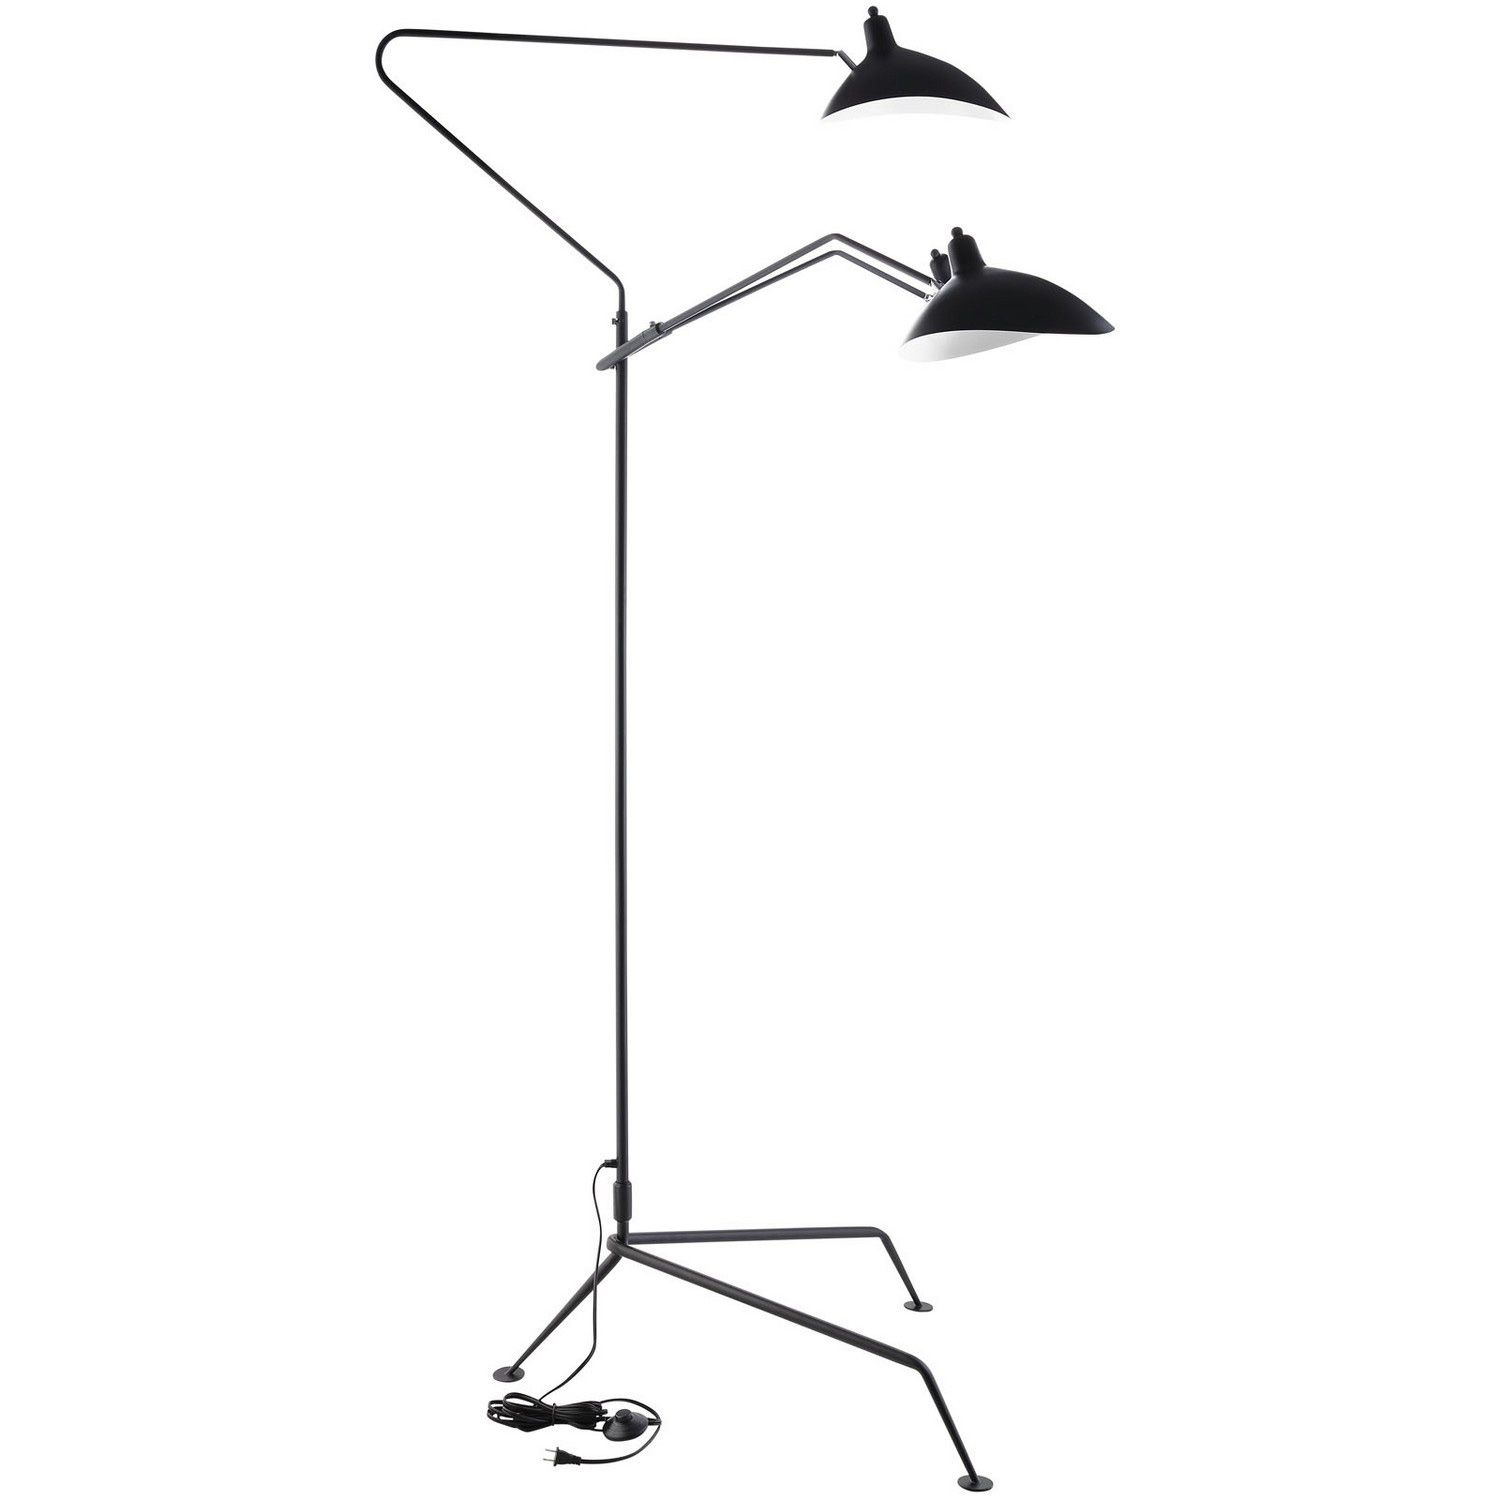 Modway View Stainless Steel Floor Lamp - Black